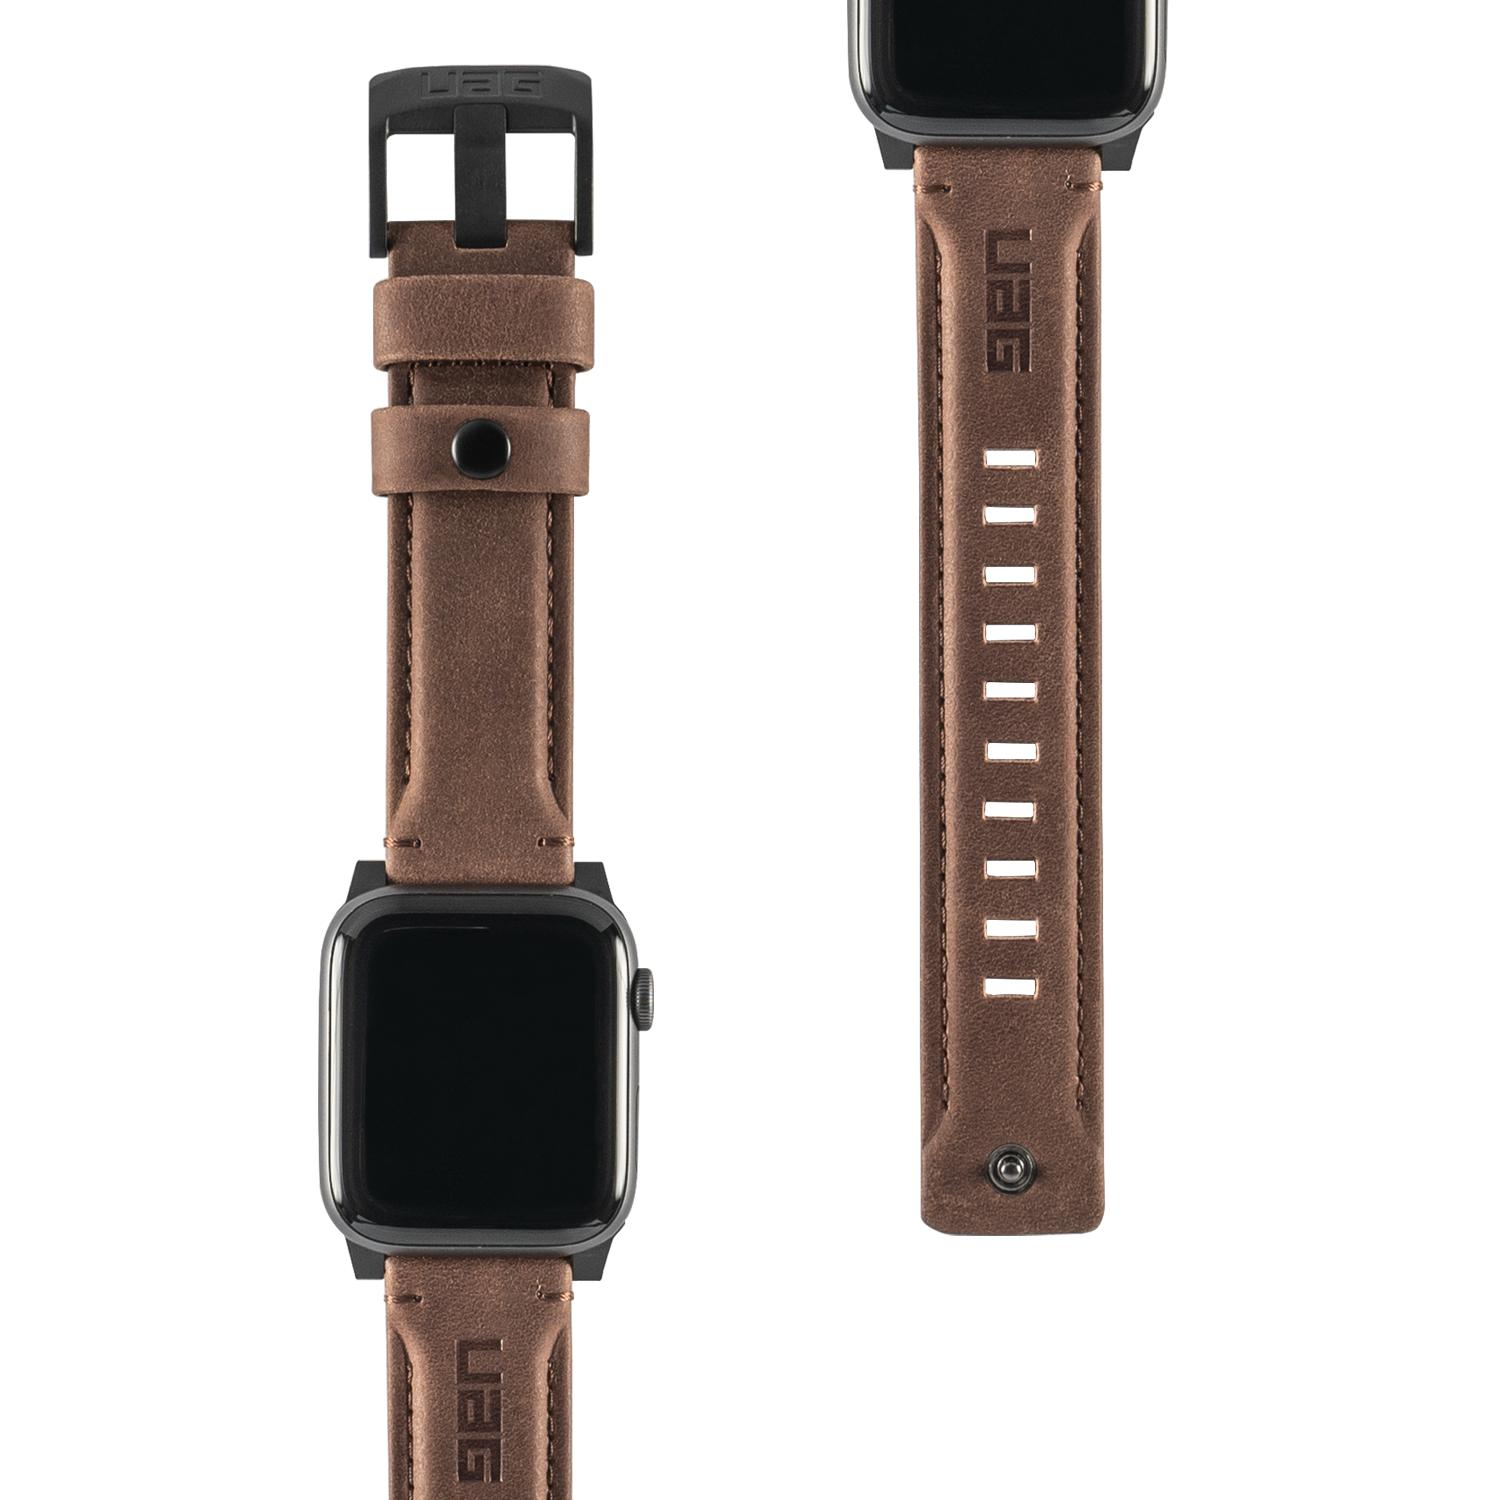 Uag Apple Watch (44mm/42mm) Leather Strap (series) By Uag By Dominant Gadget..